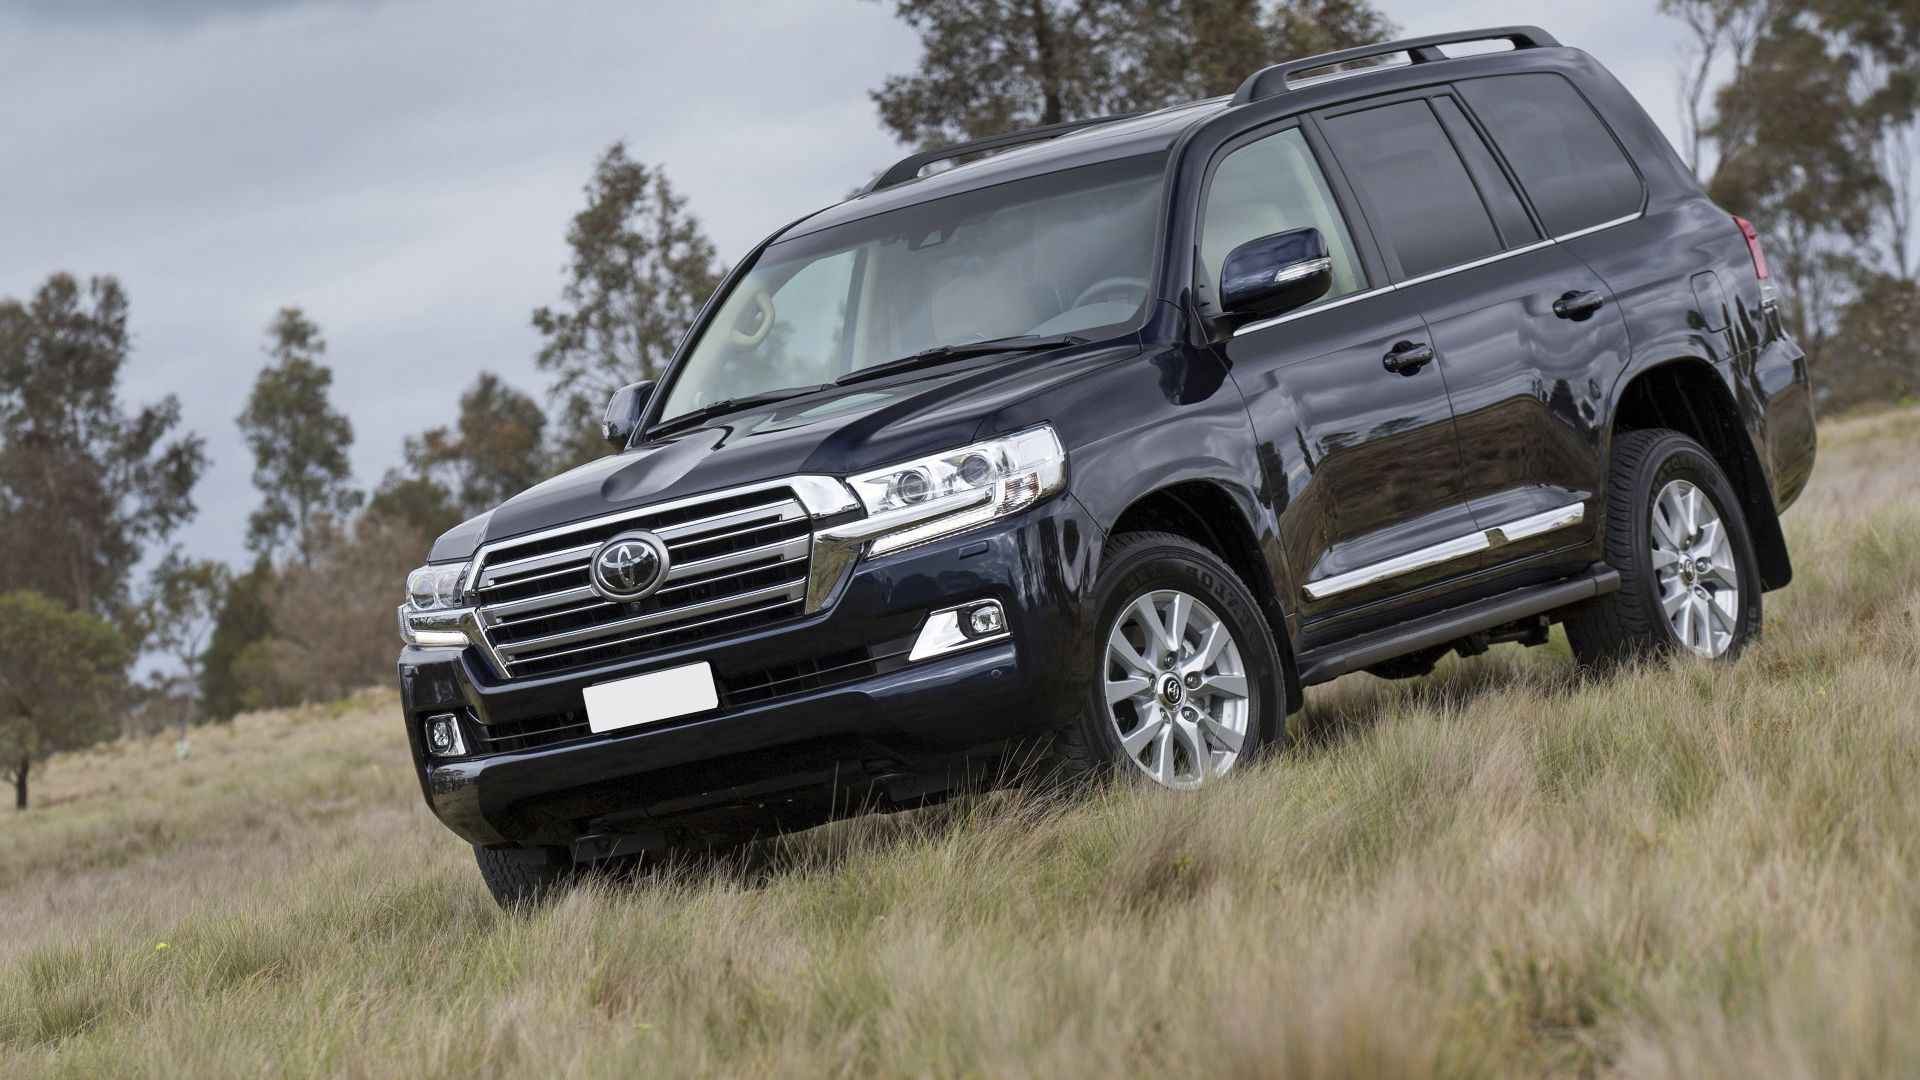 new 2019 toyota land cruiser 200 review